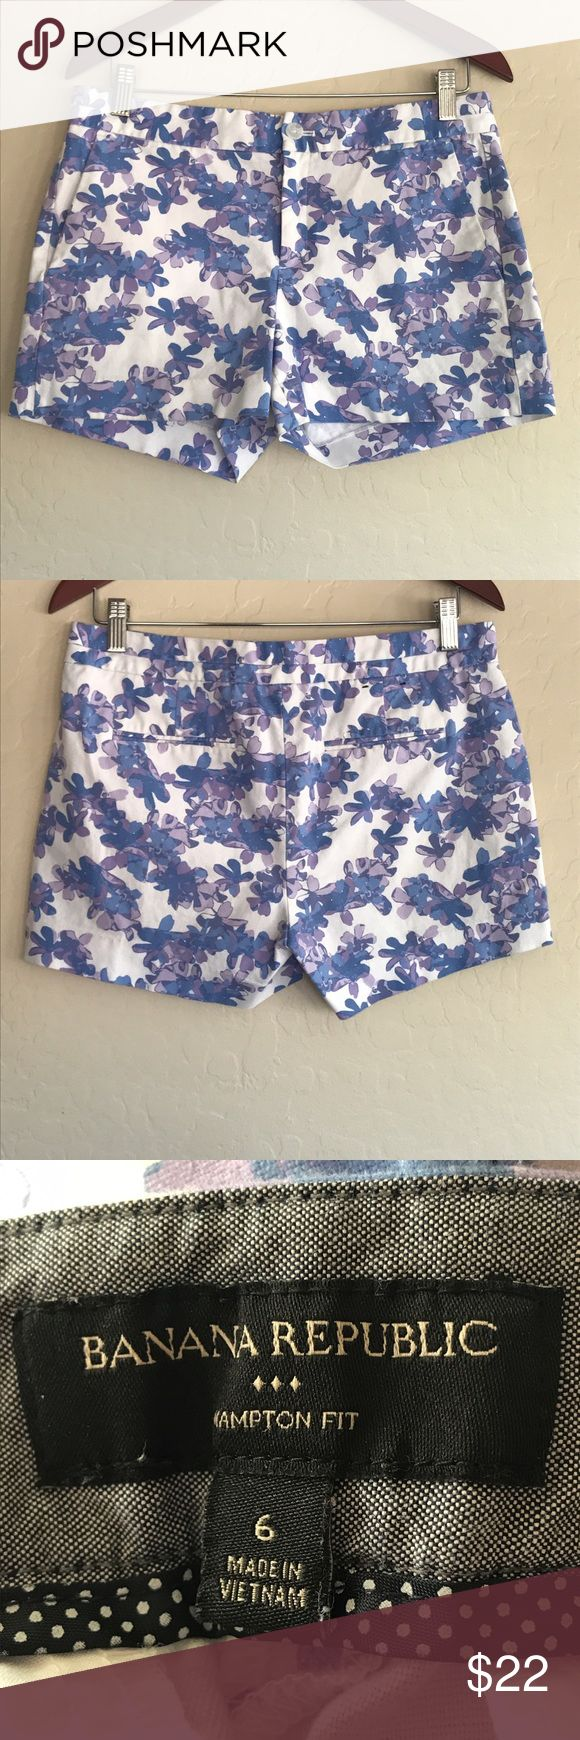 Banana Republic Floral Hampton fit shorts In EUC Banana Republic floral shorts. No stains or flaws. Perfect for summer Banana Republic Shorts